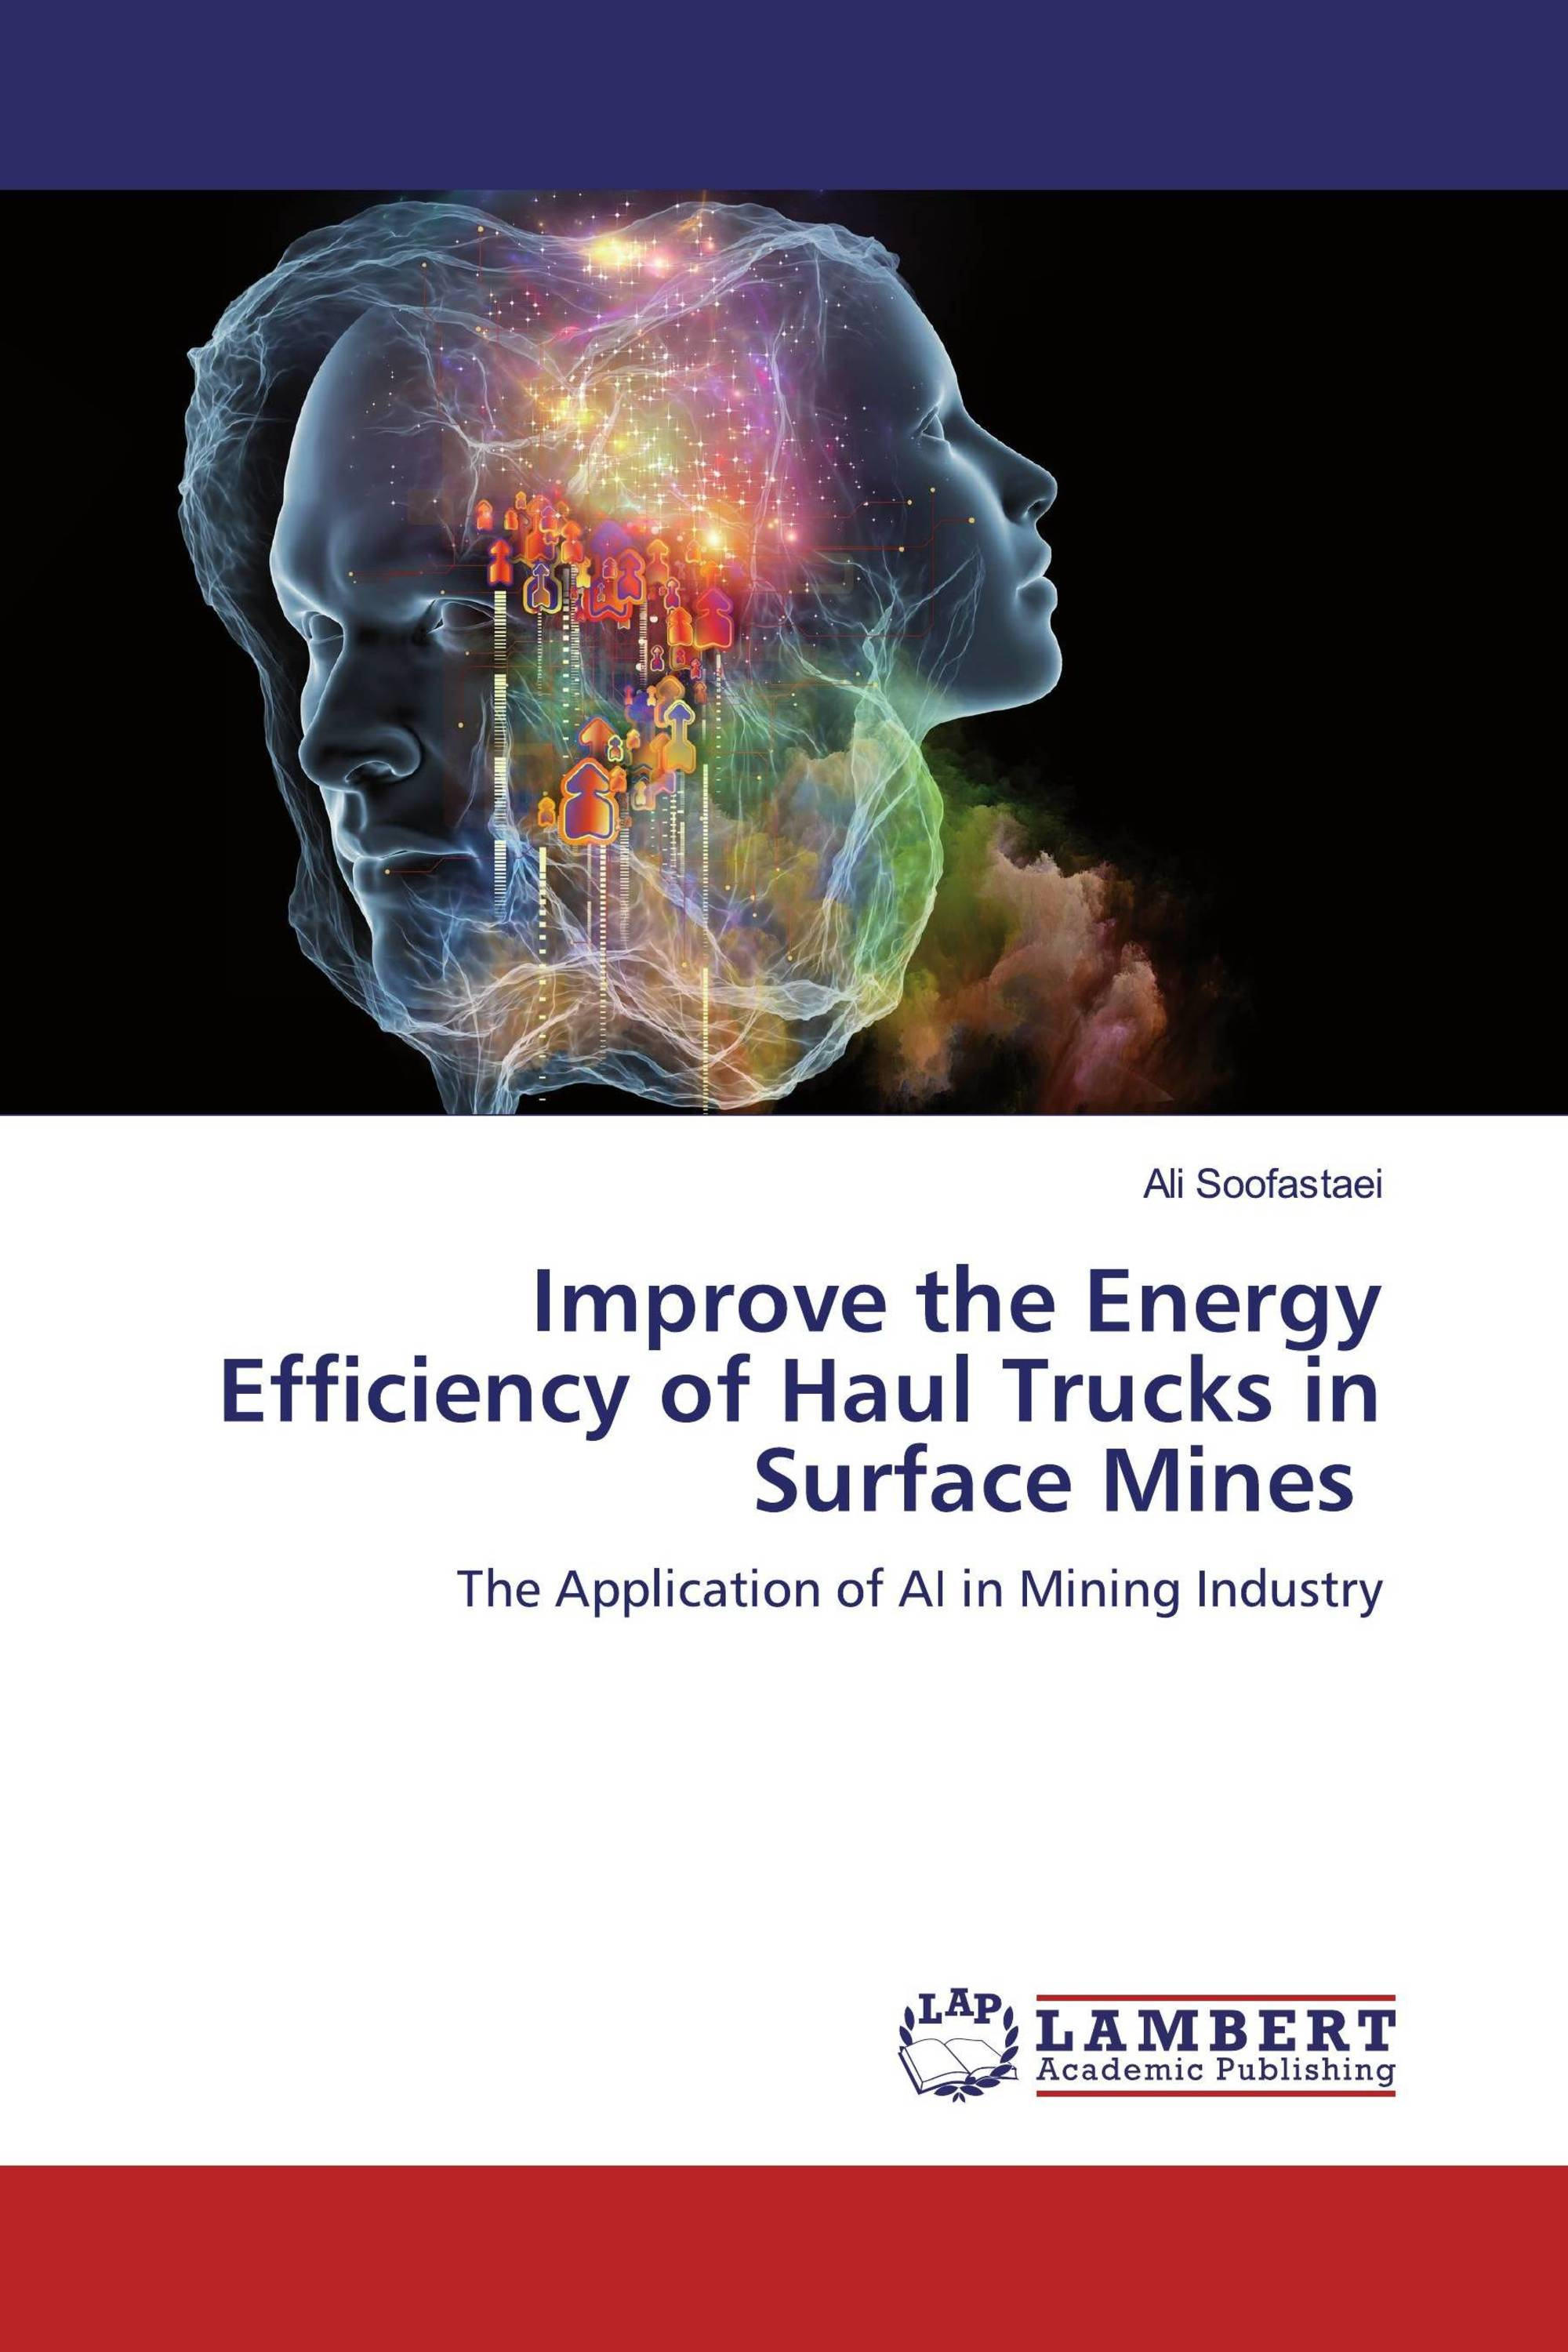 Improve the Energy Efficiency of Haul Trucks in Surface Mines